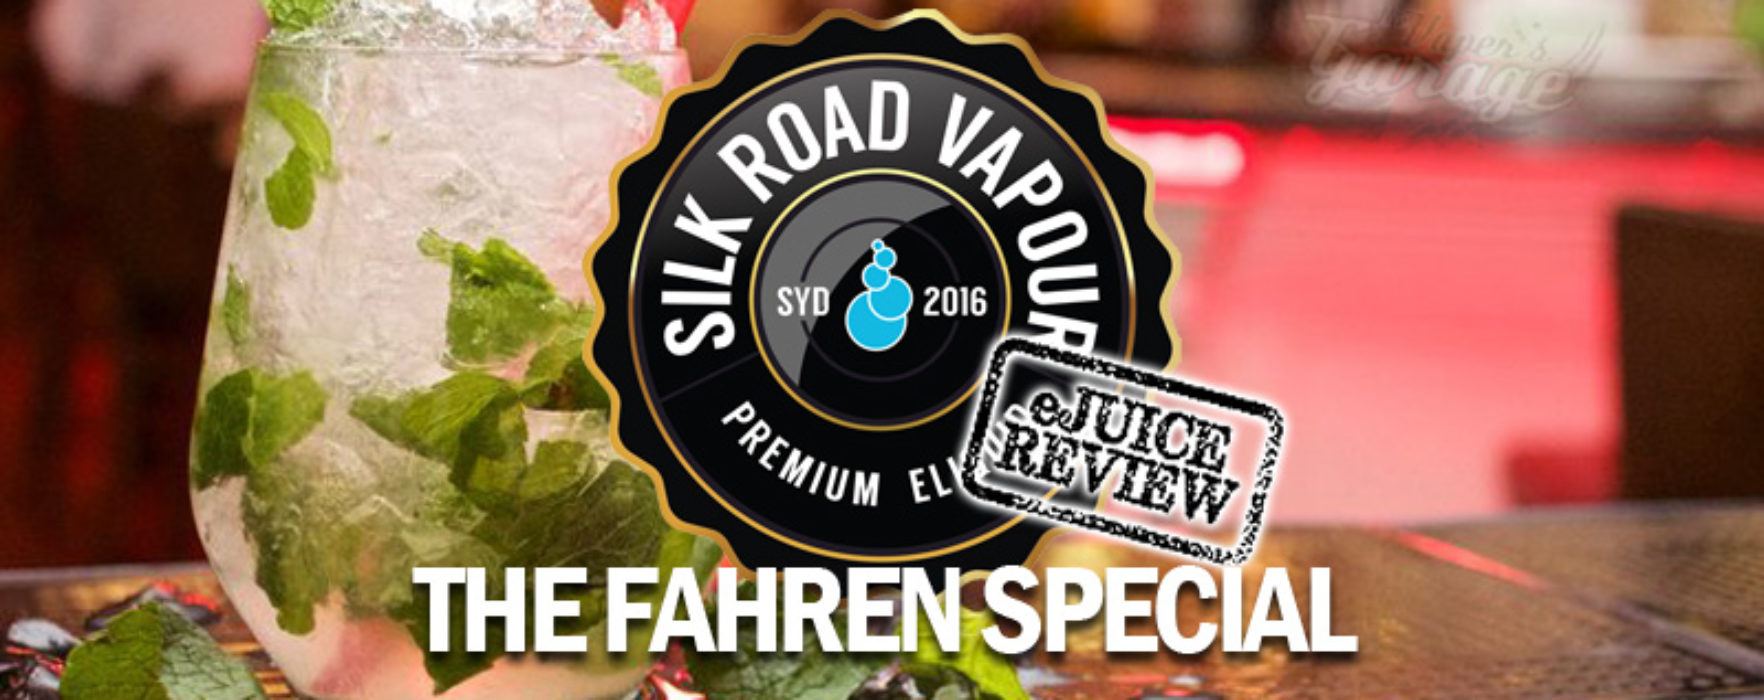 eJuice Review: The Fahren Special by Silk Road Vapour